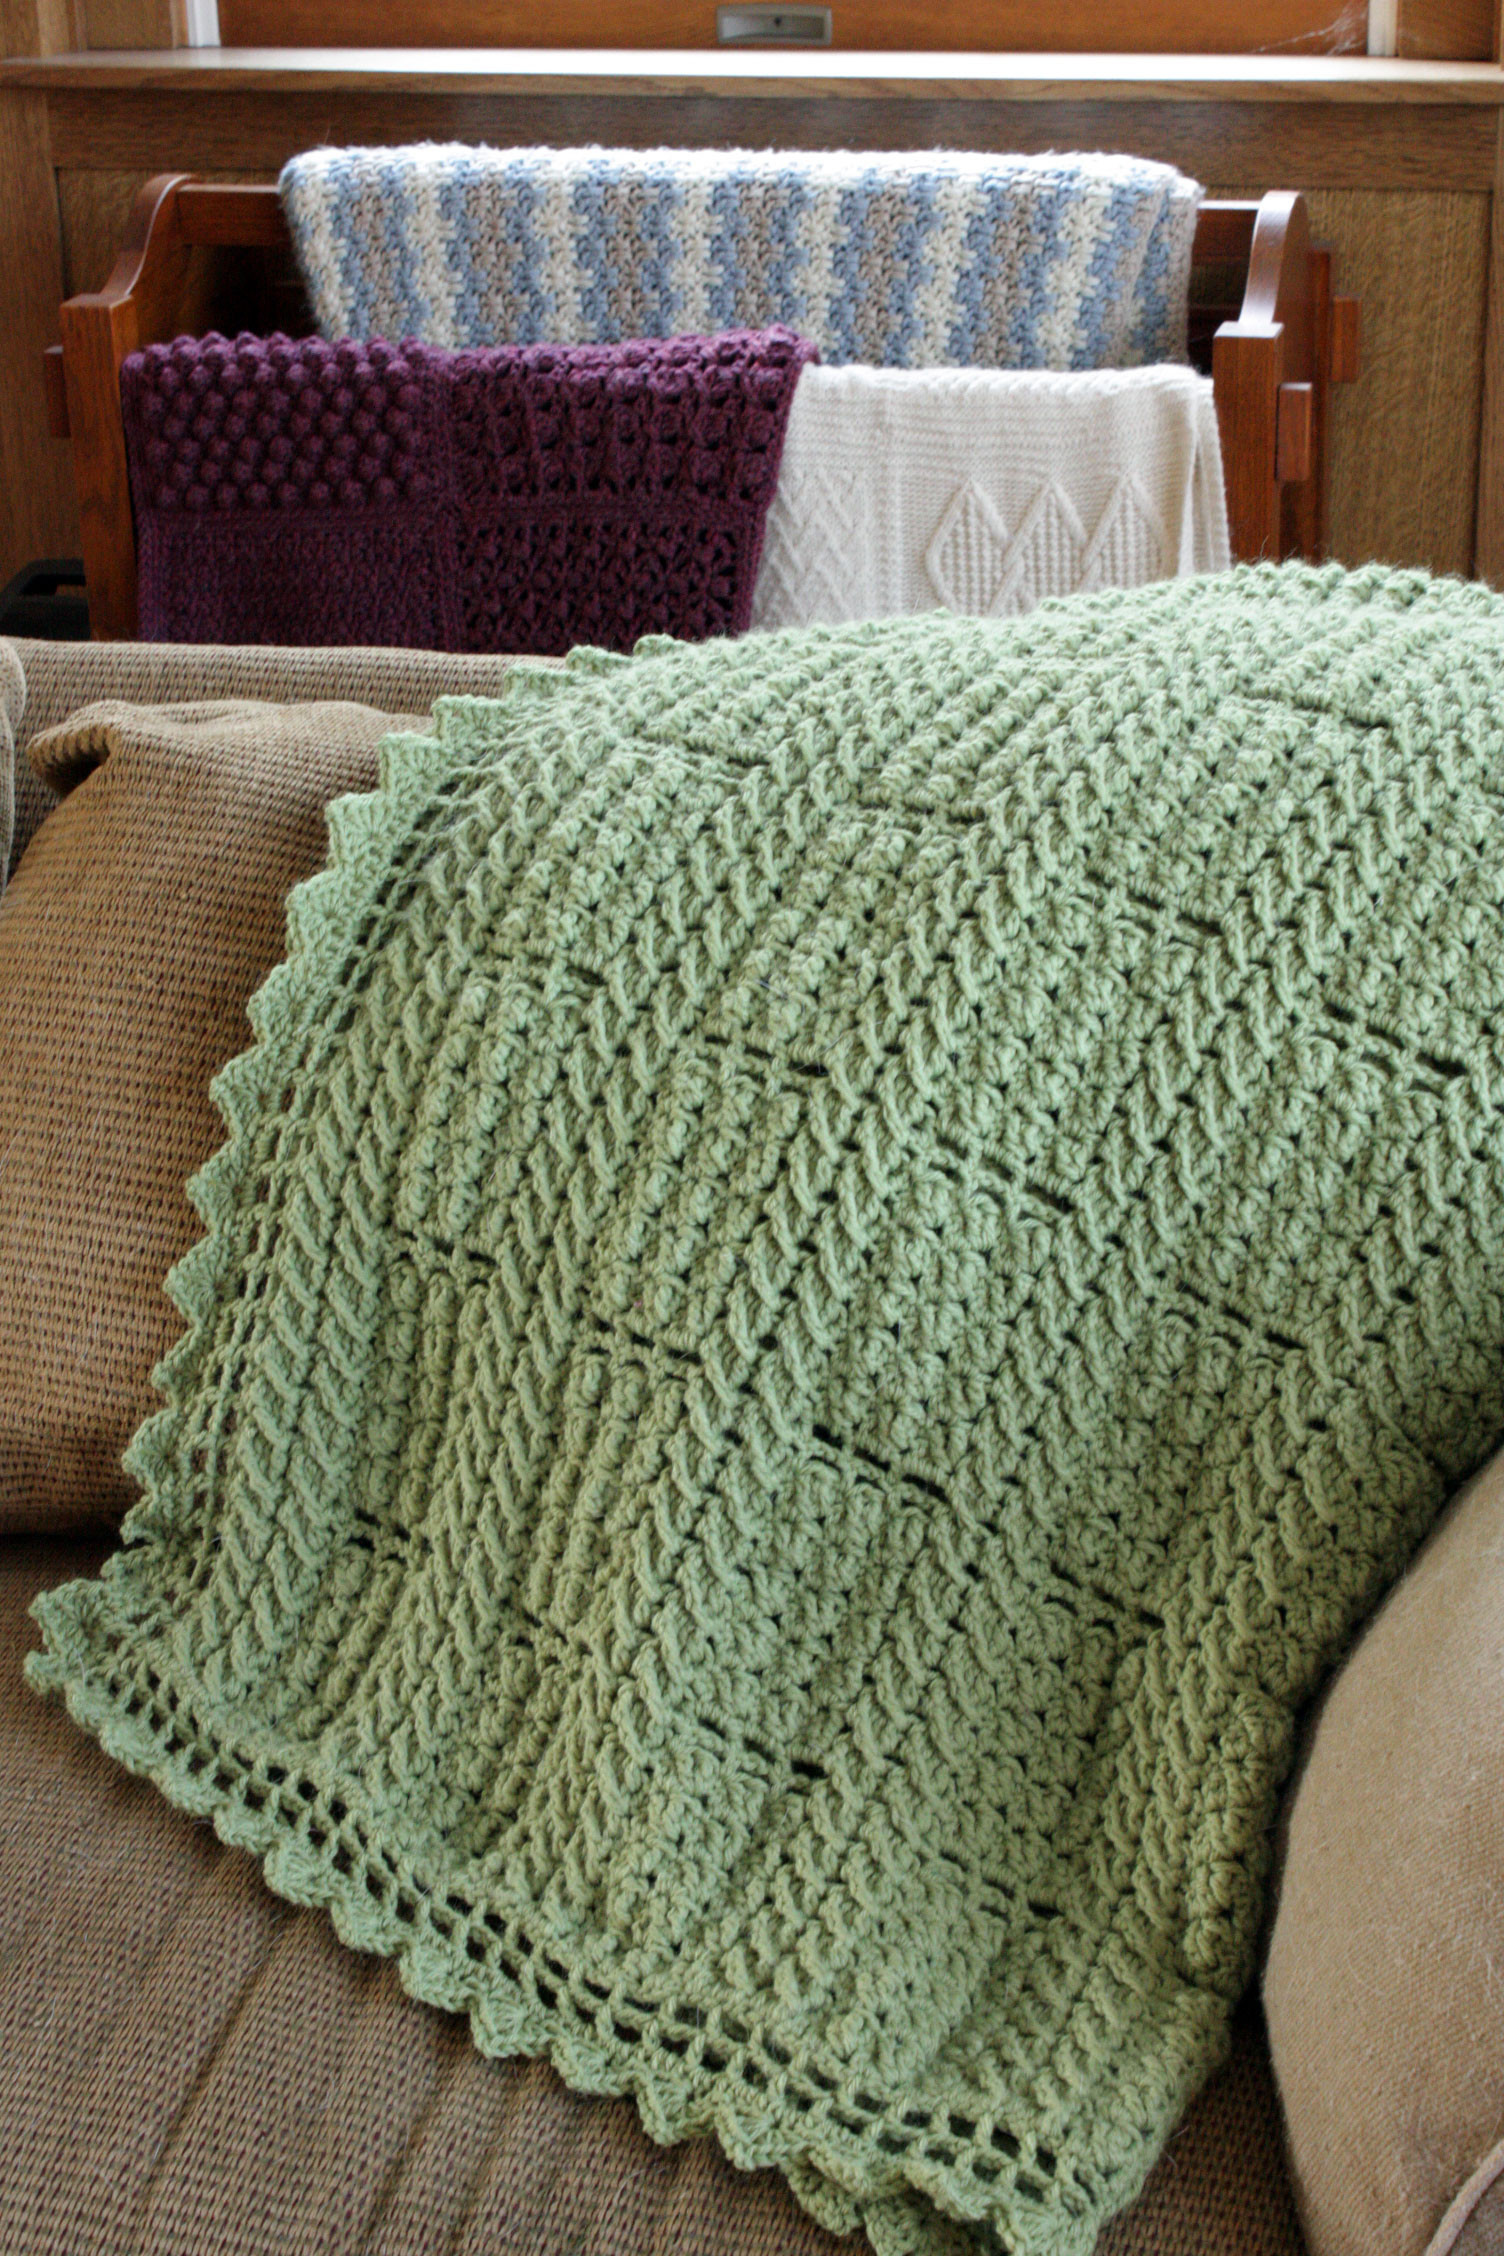 Crochet Throws Patterns Unique K N I T T I N G P A R K December 2010 Of Wonderful 44 Images Crochet Throws Patterns